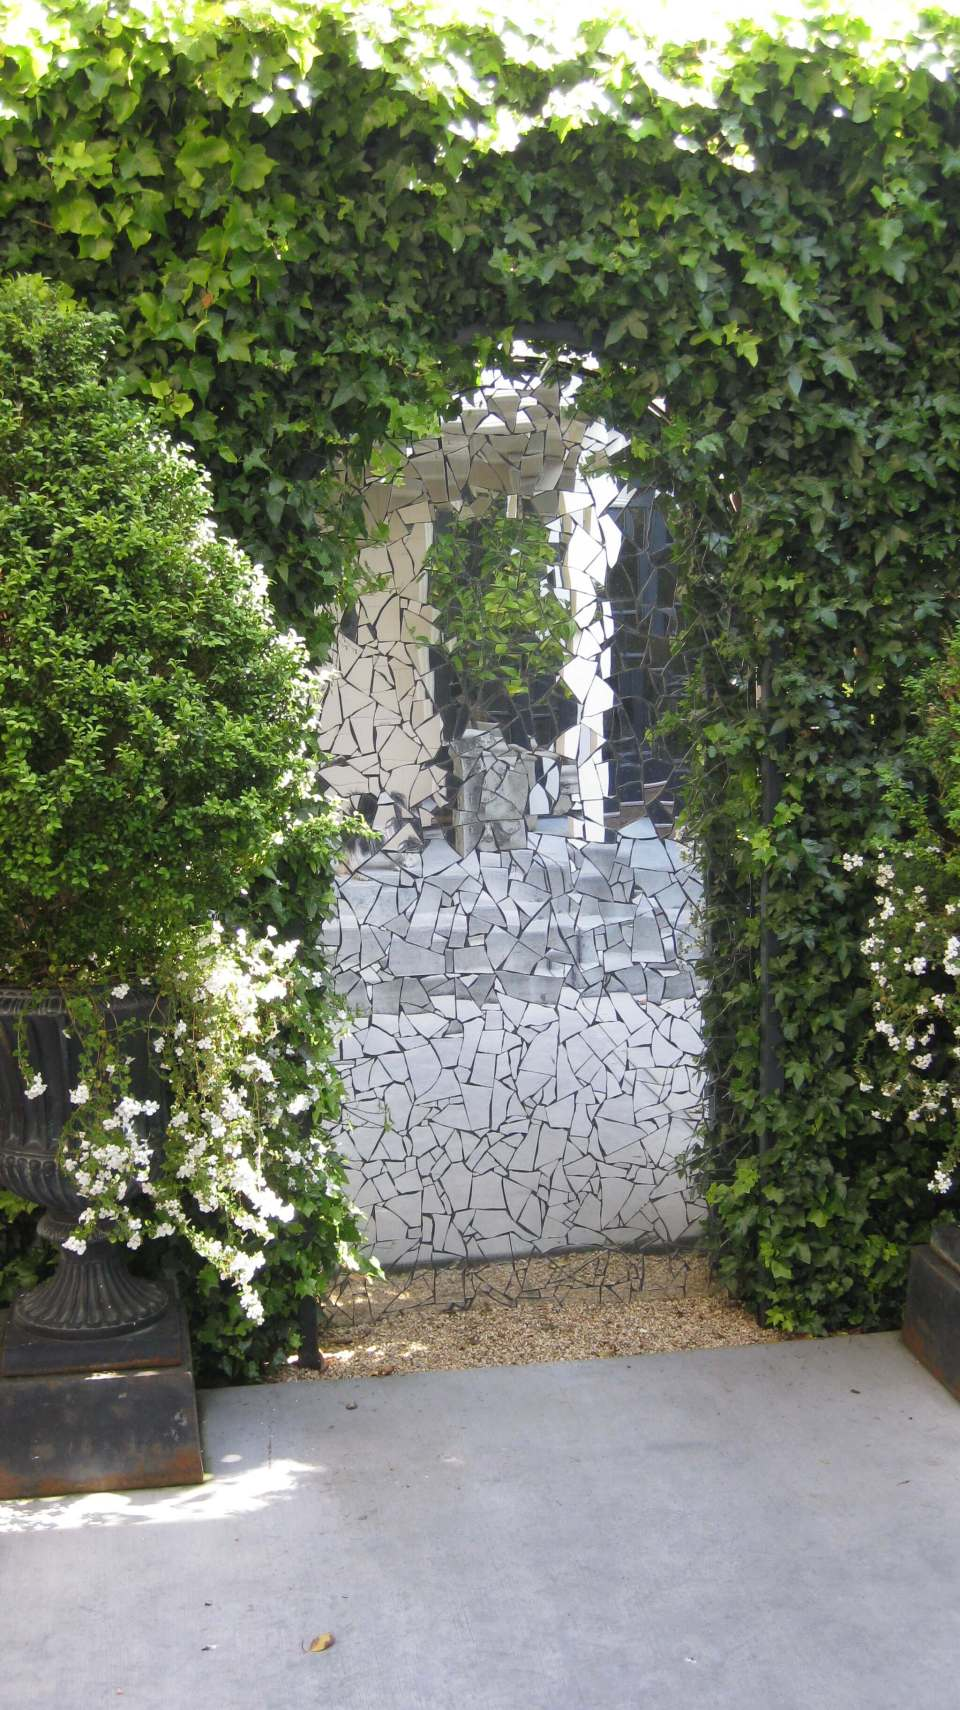 On-Line Portal: Make a garden gate by gluing the mirror pieces